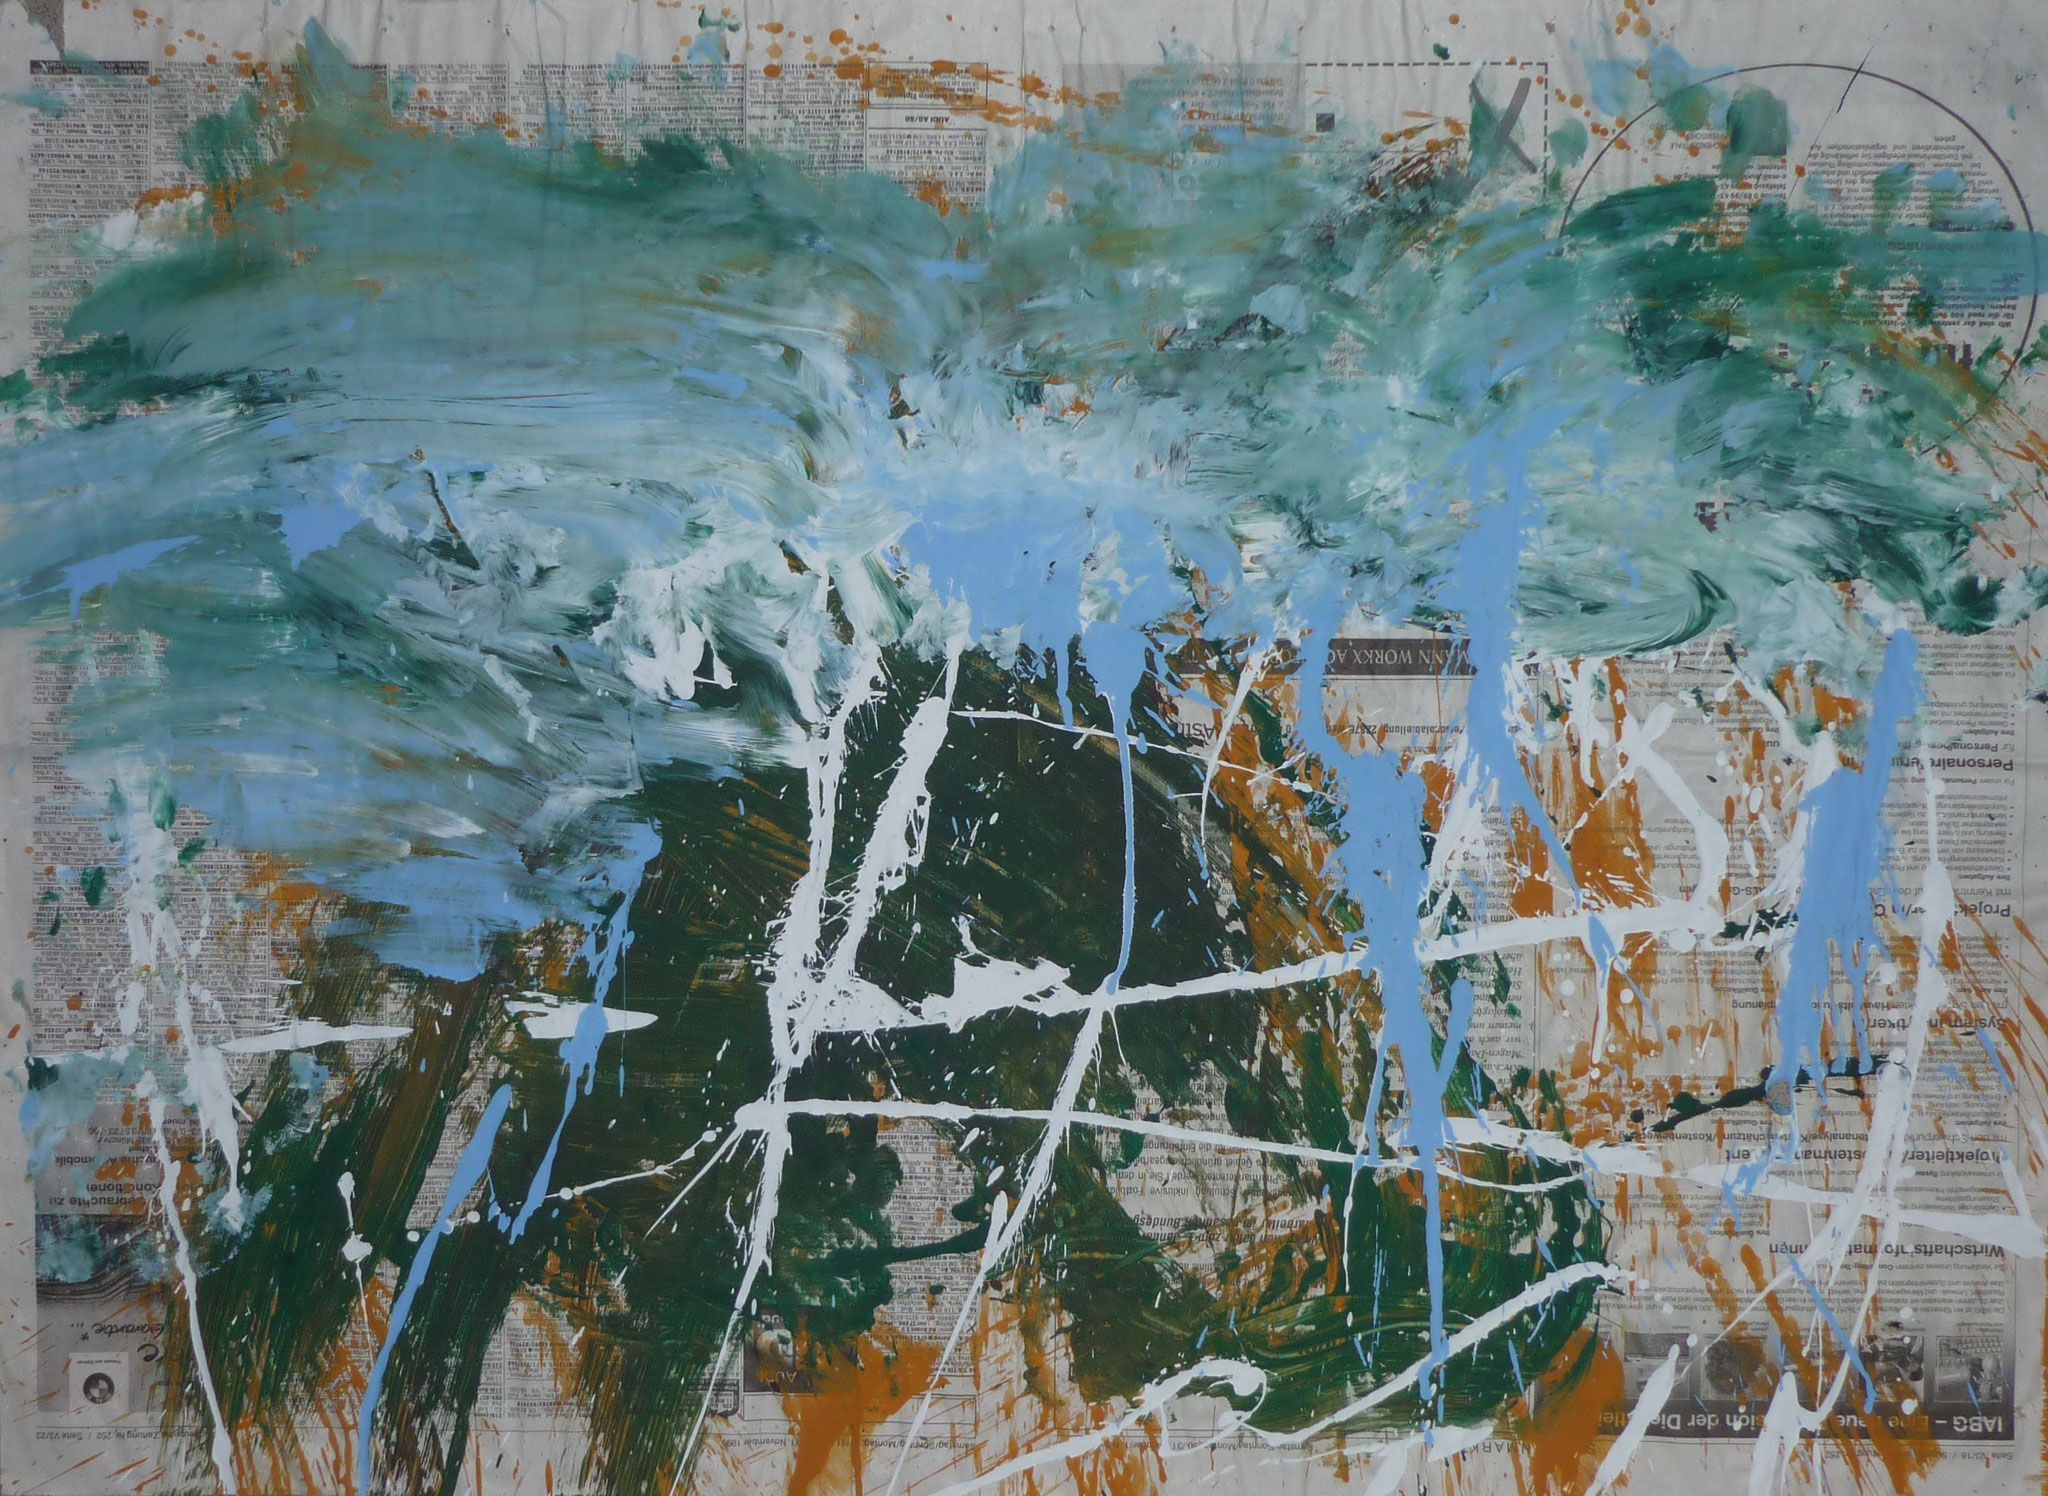 Mess Painting V, 1999, 77x57cm, Zeitung